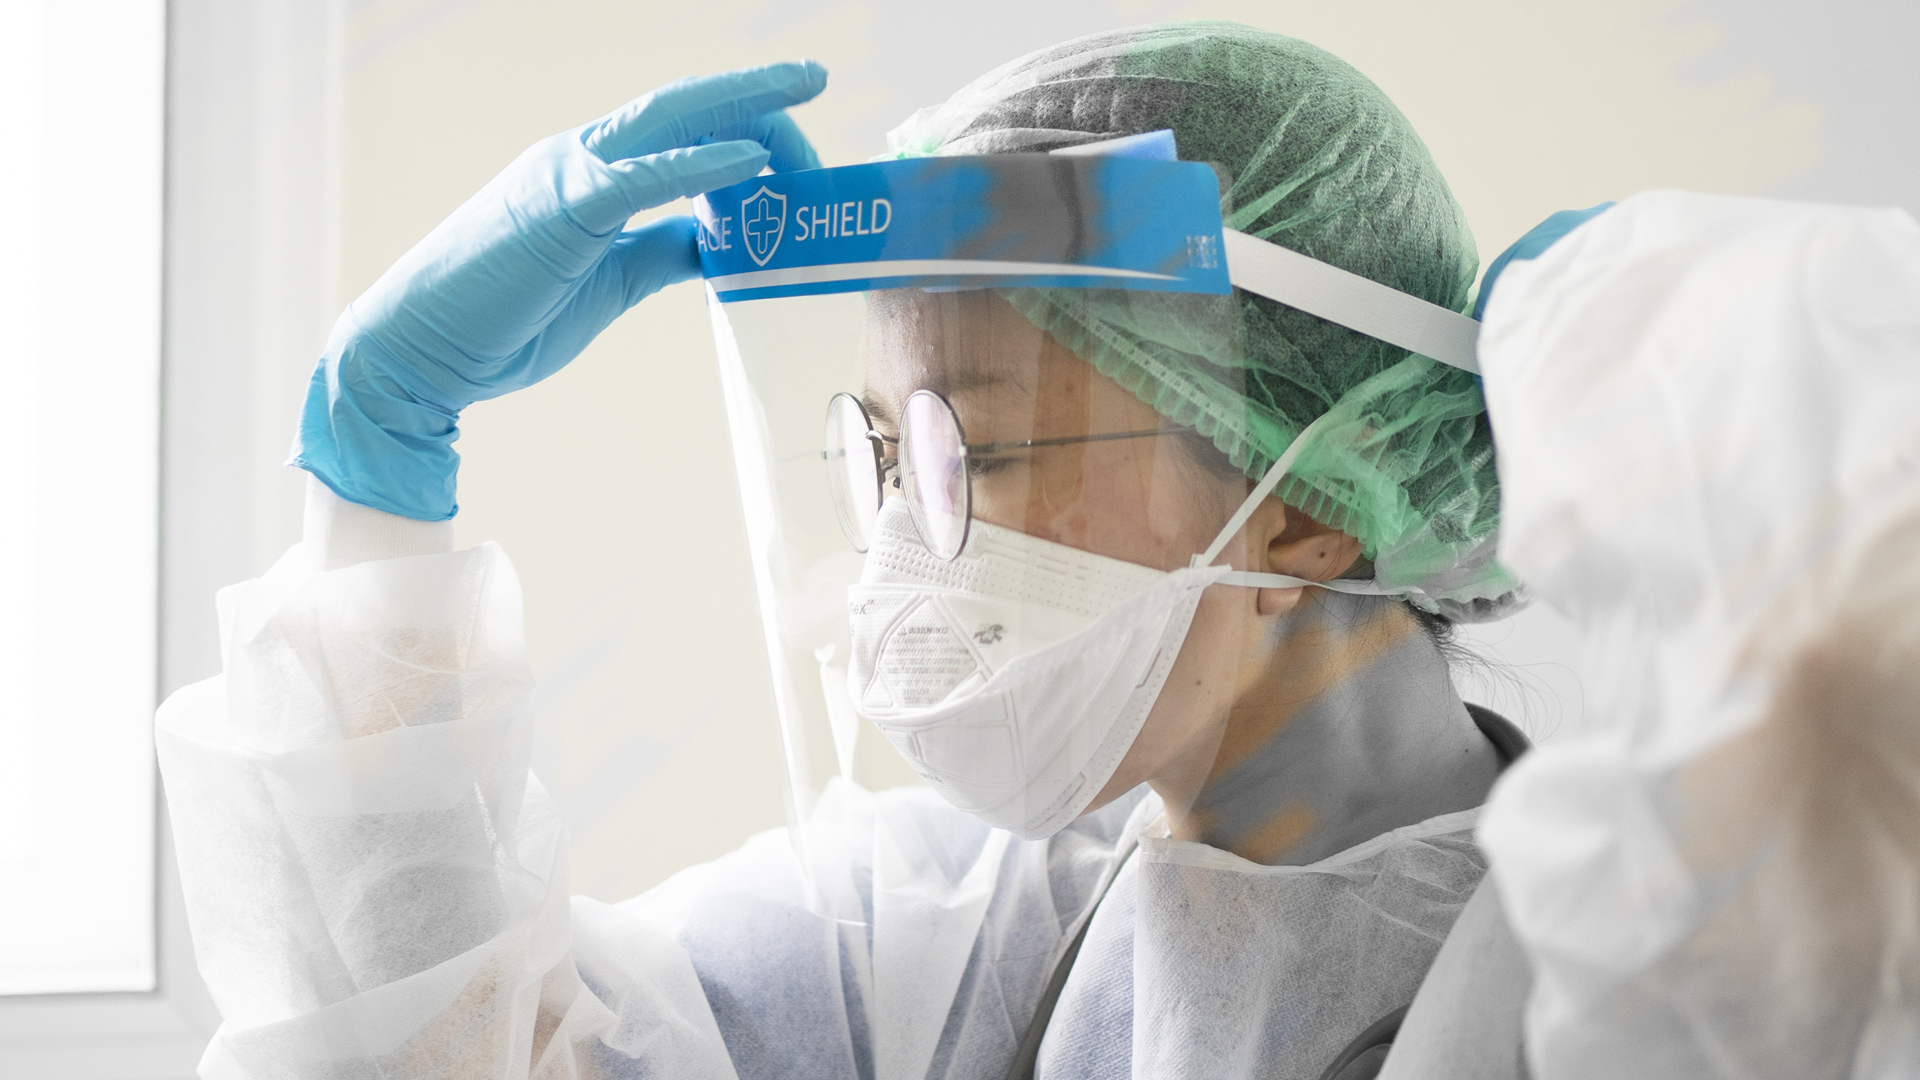 Hospital working in PPE equipment